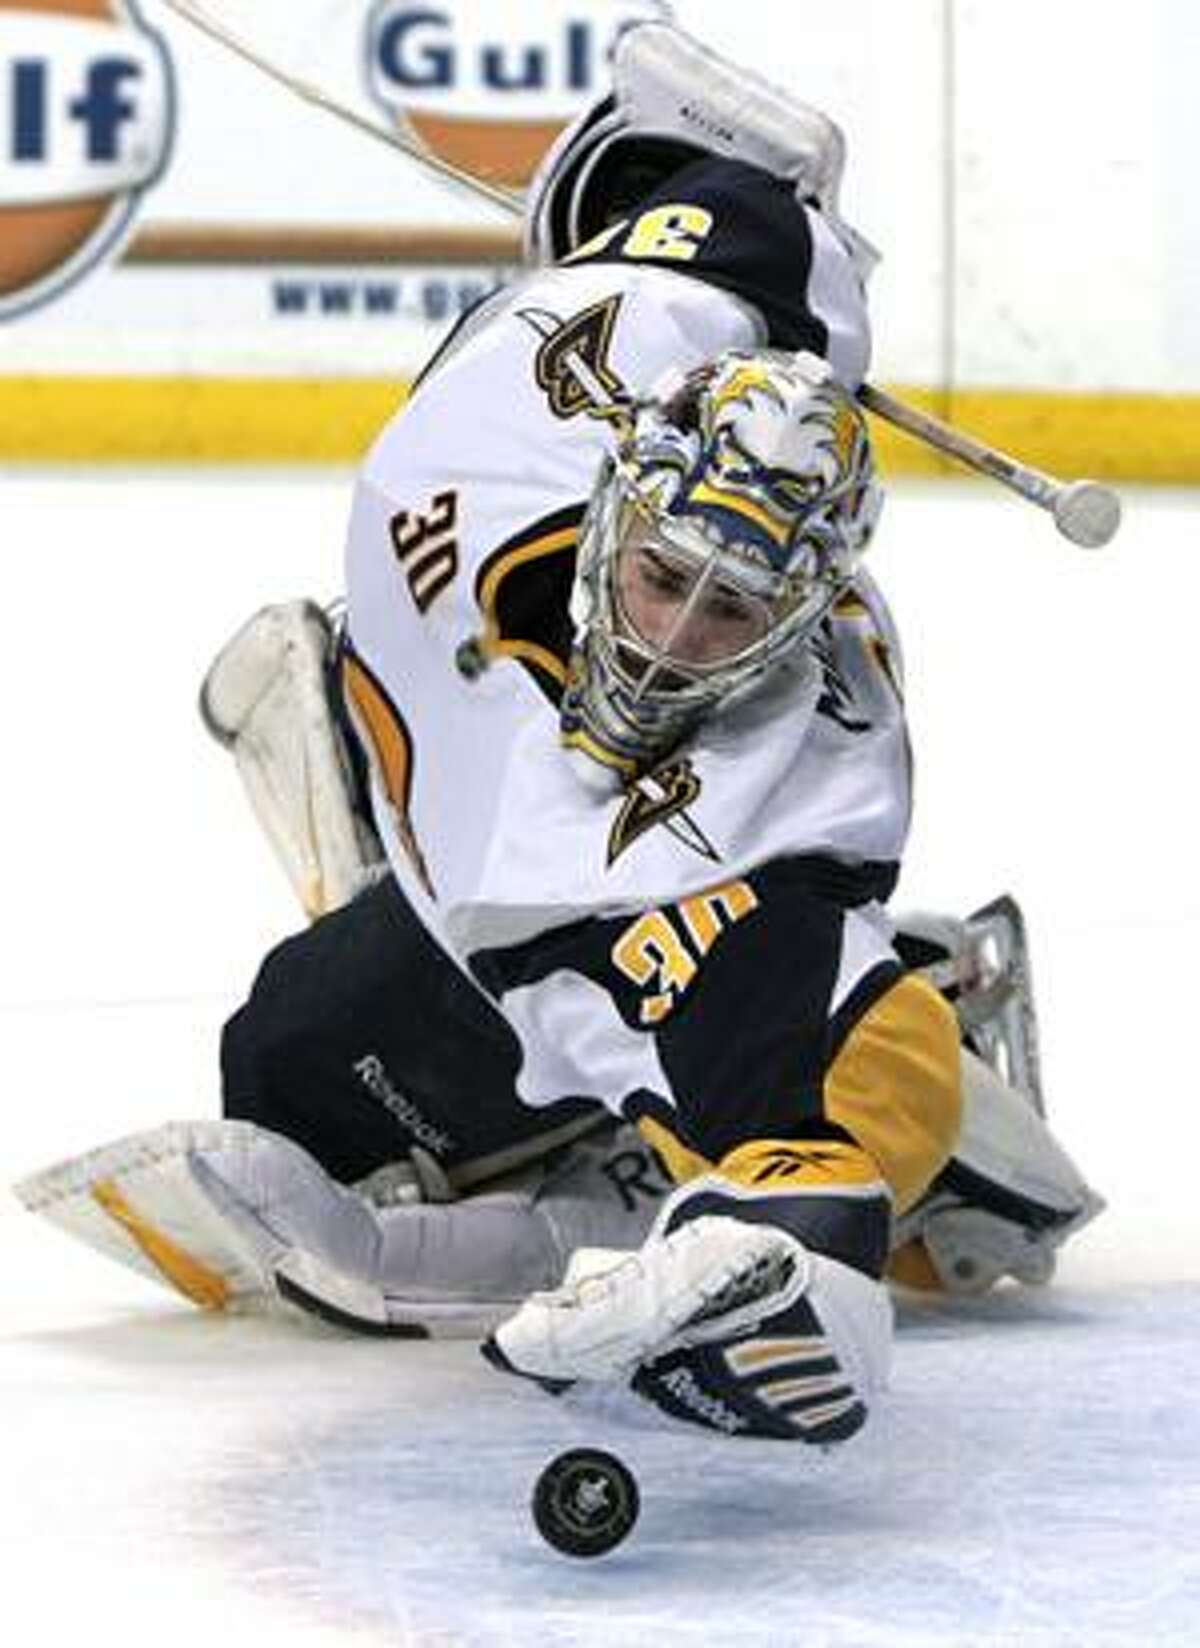 Buffalo Sabres goalie Ryan Miller (30) makes a glove save against the Boston Bruins during the first overtime period of Game 4 of an NHL hockey playoff series in Boston on Wednesday, April 21, 2010. (AP Photo/Elise Amendola)